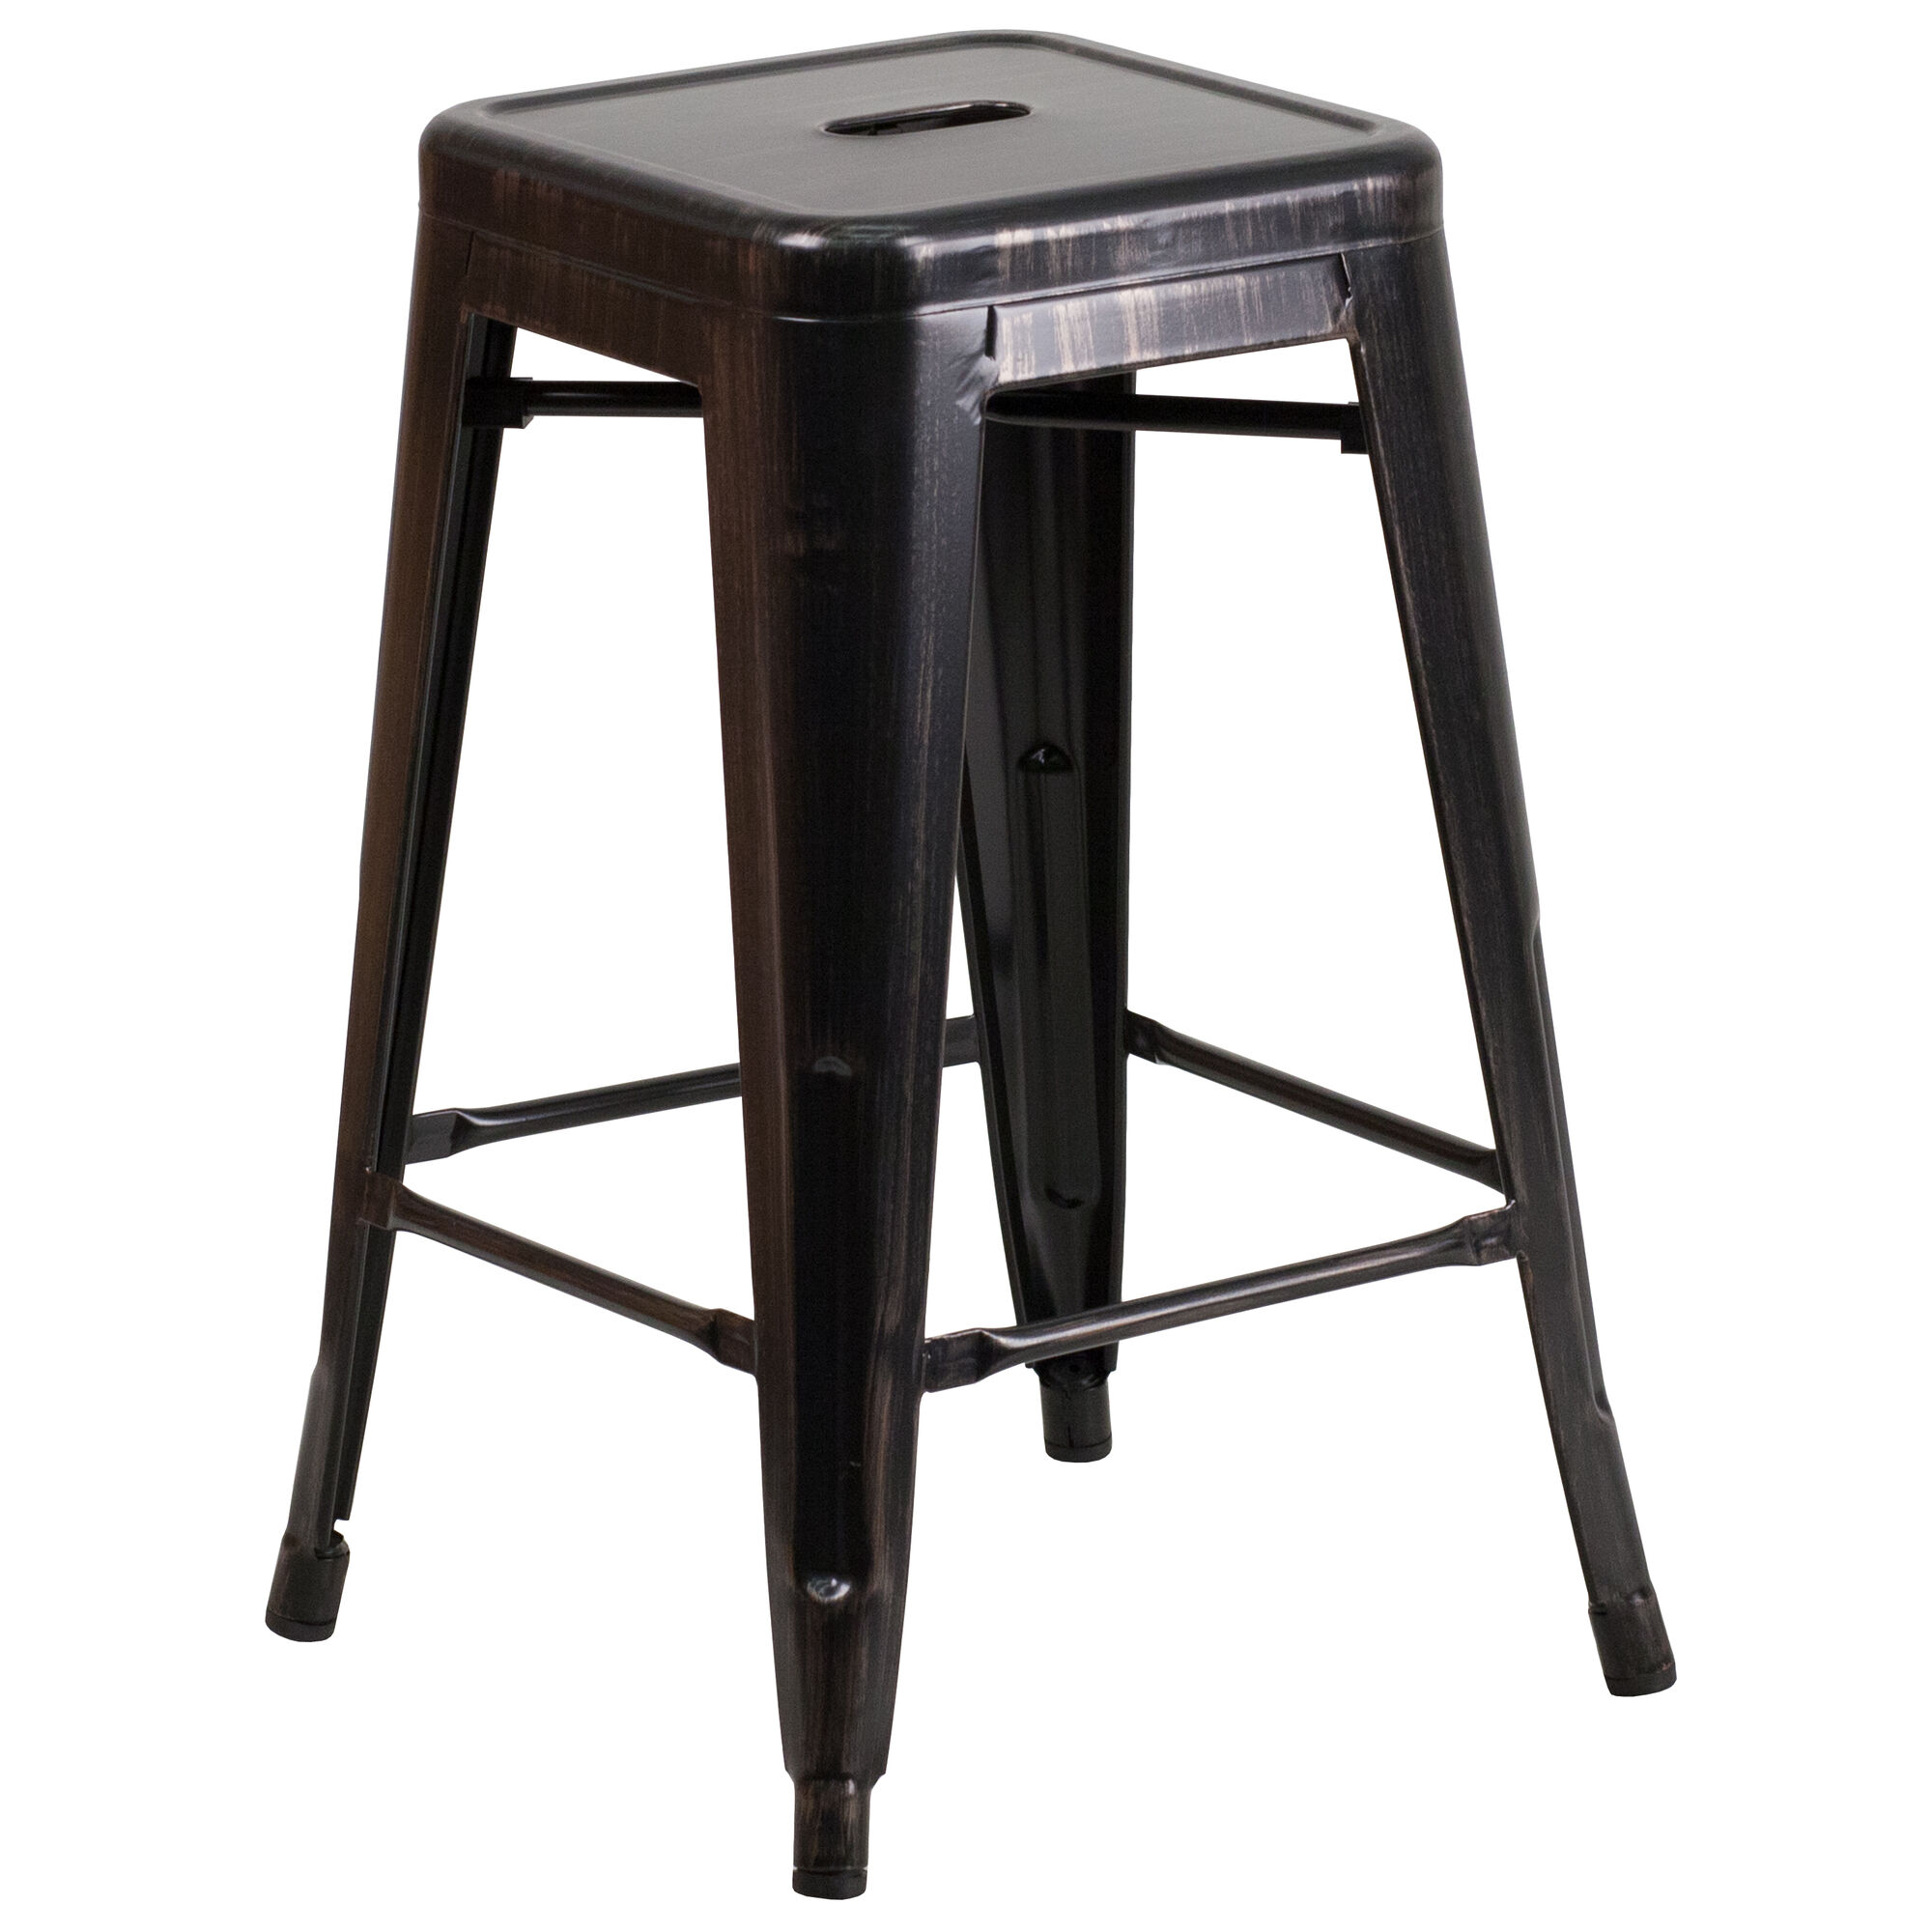 Wondrous Commercial Grade 24 High Backless Black Antique Gold Metal Indoor Outdoor Counter Height Stool With Square Seat Machost Co Dining Chair Design Ideas Machostcouk